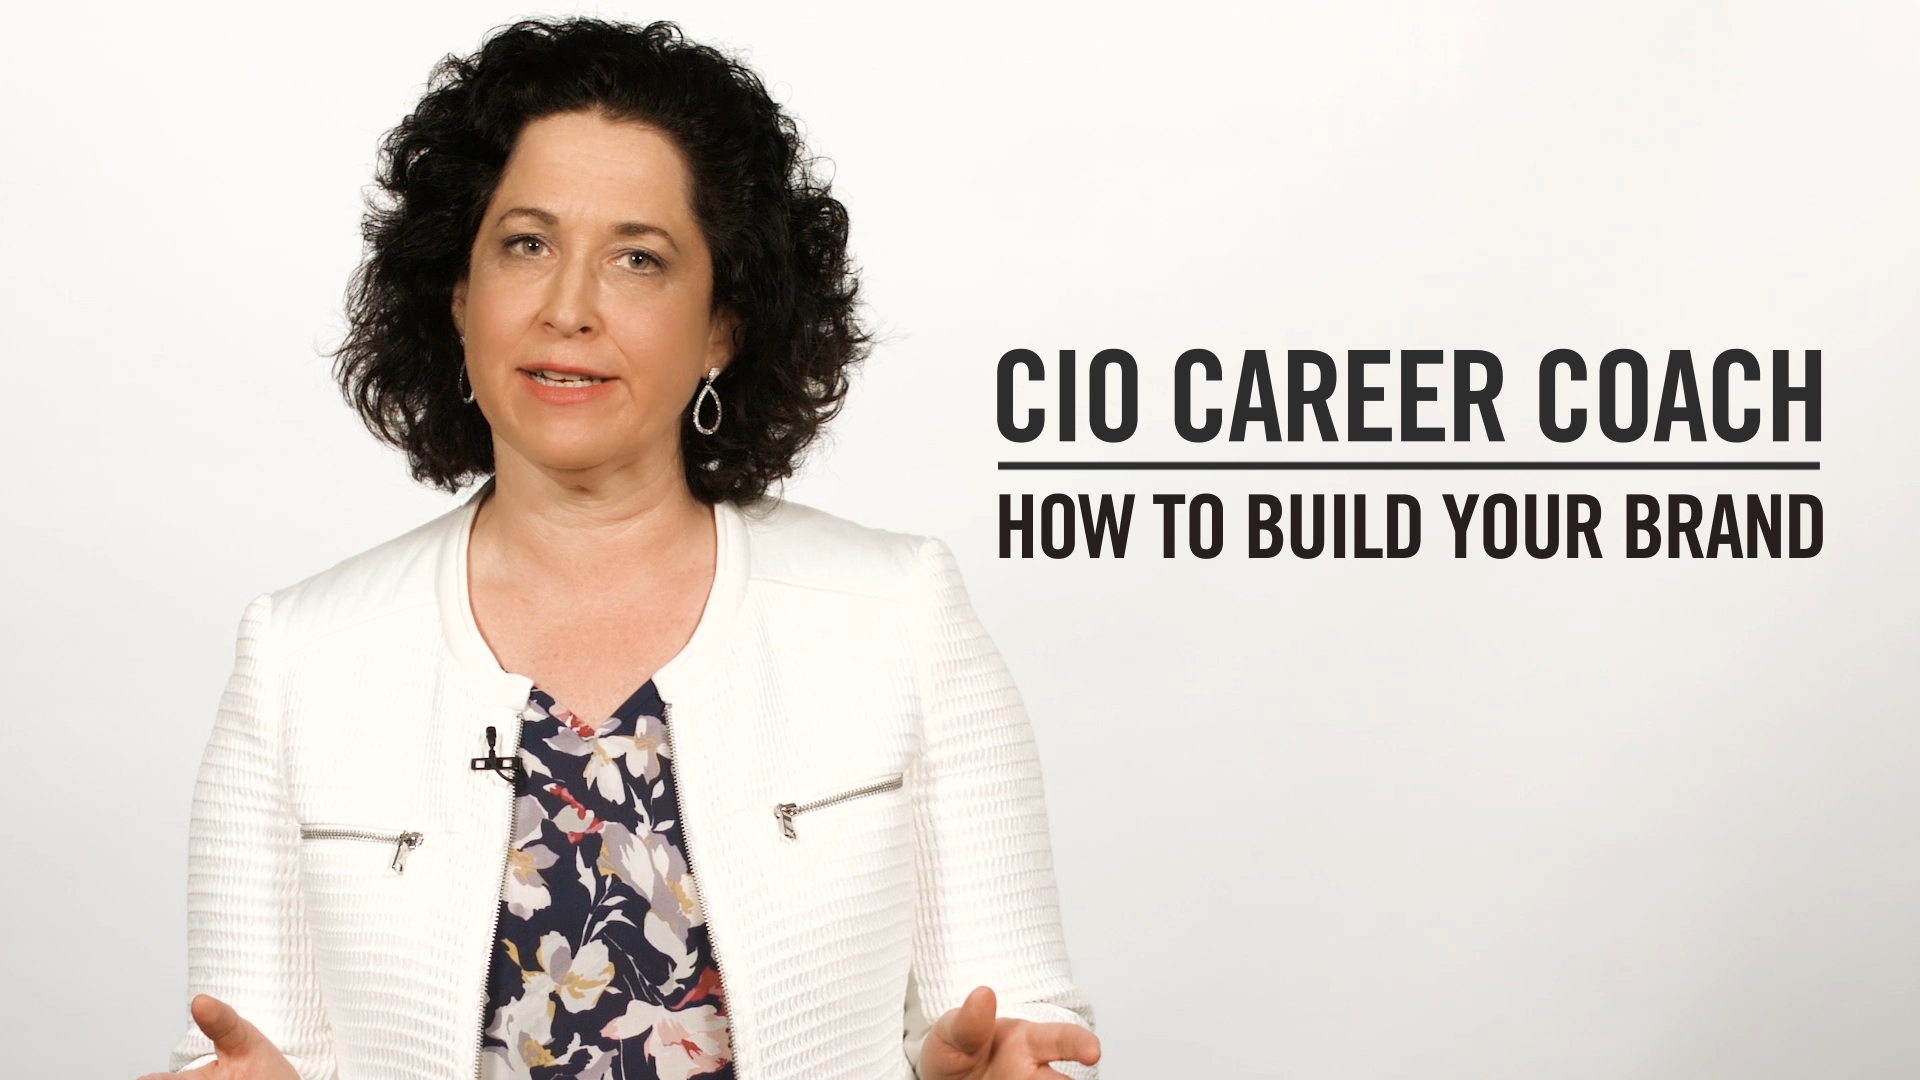 career coach how to ace a job interview video cio career coach how to build your brand career coach how to build